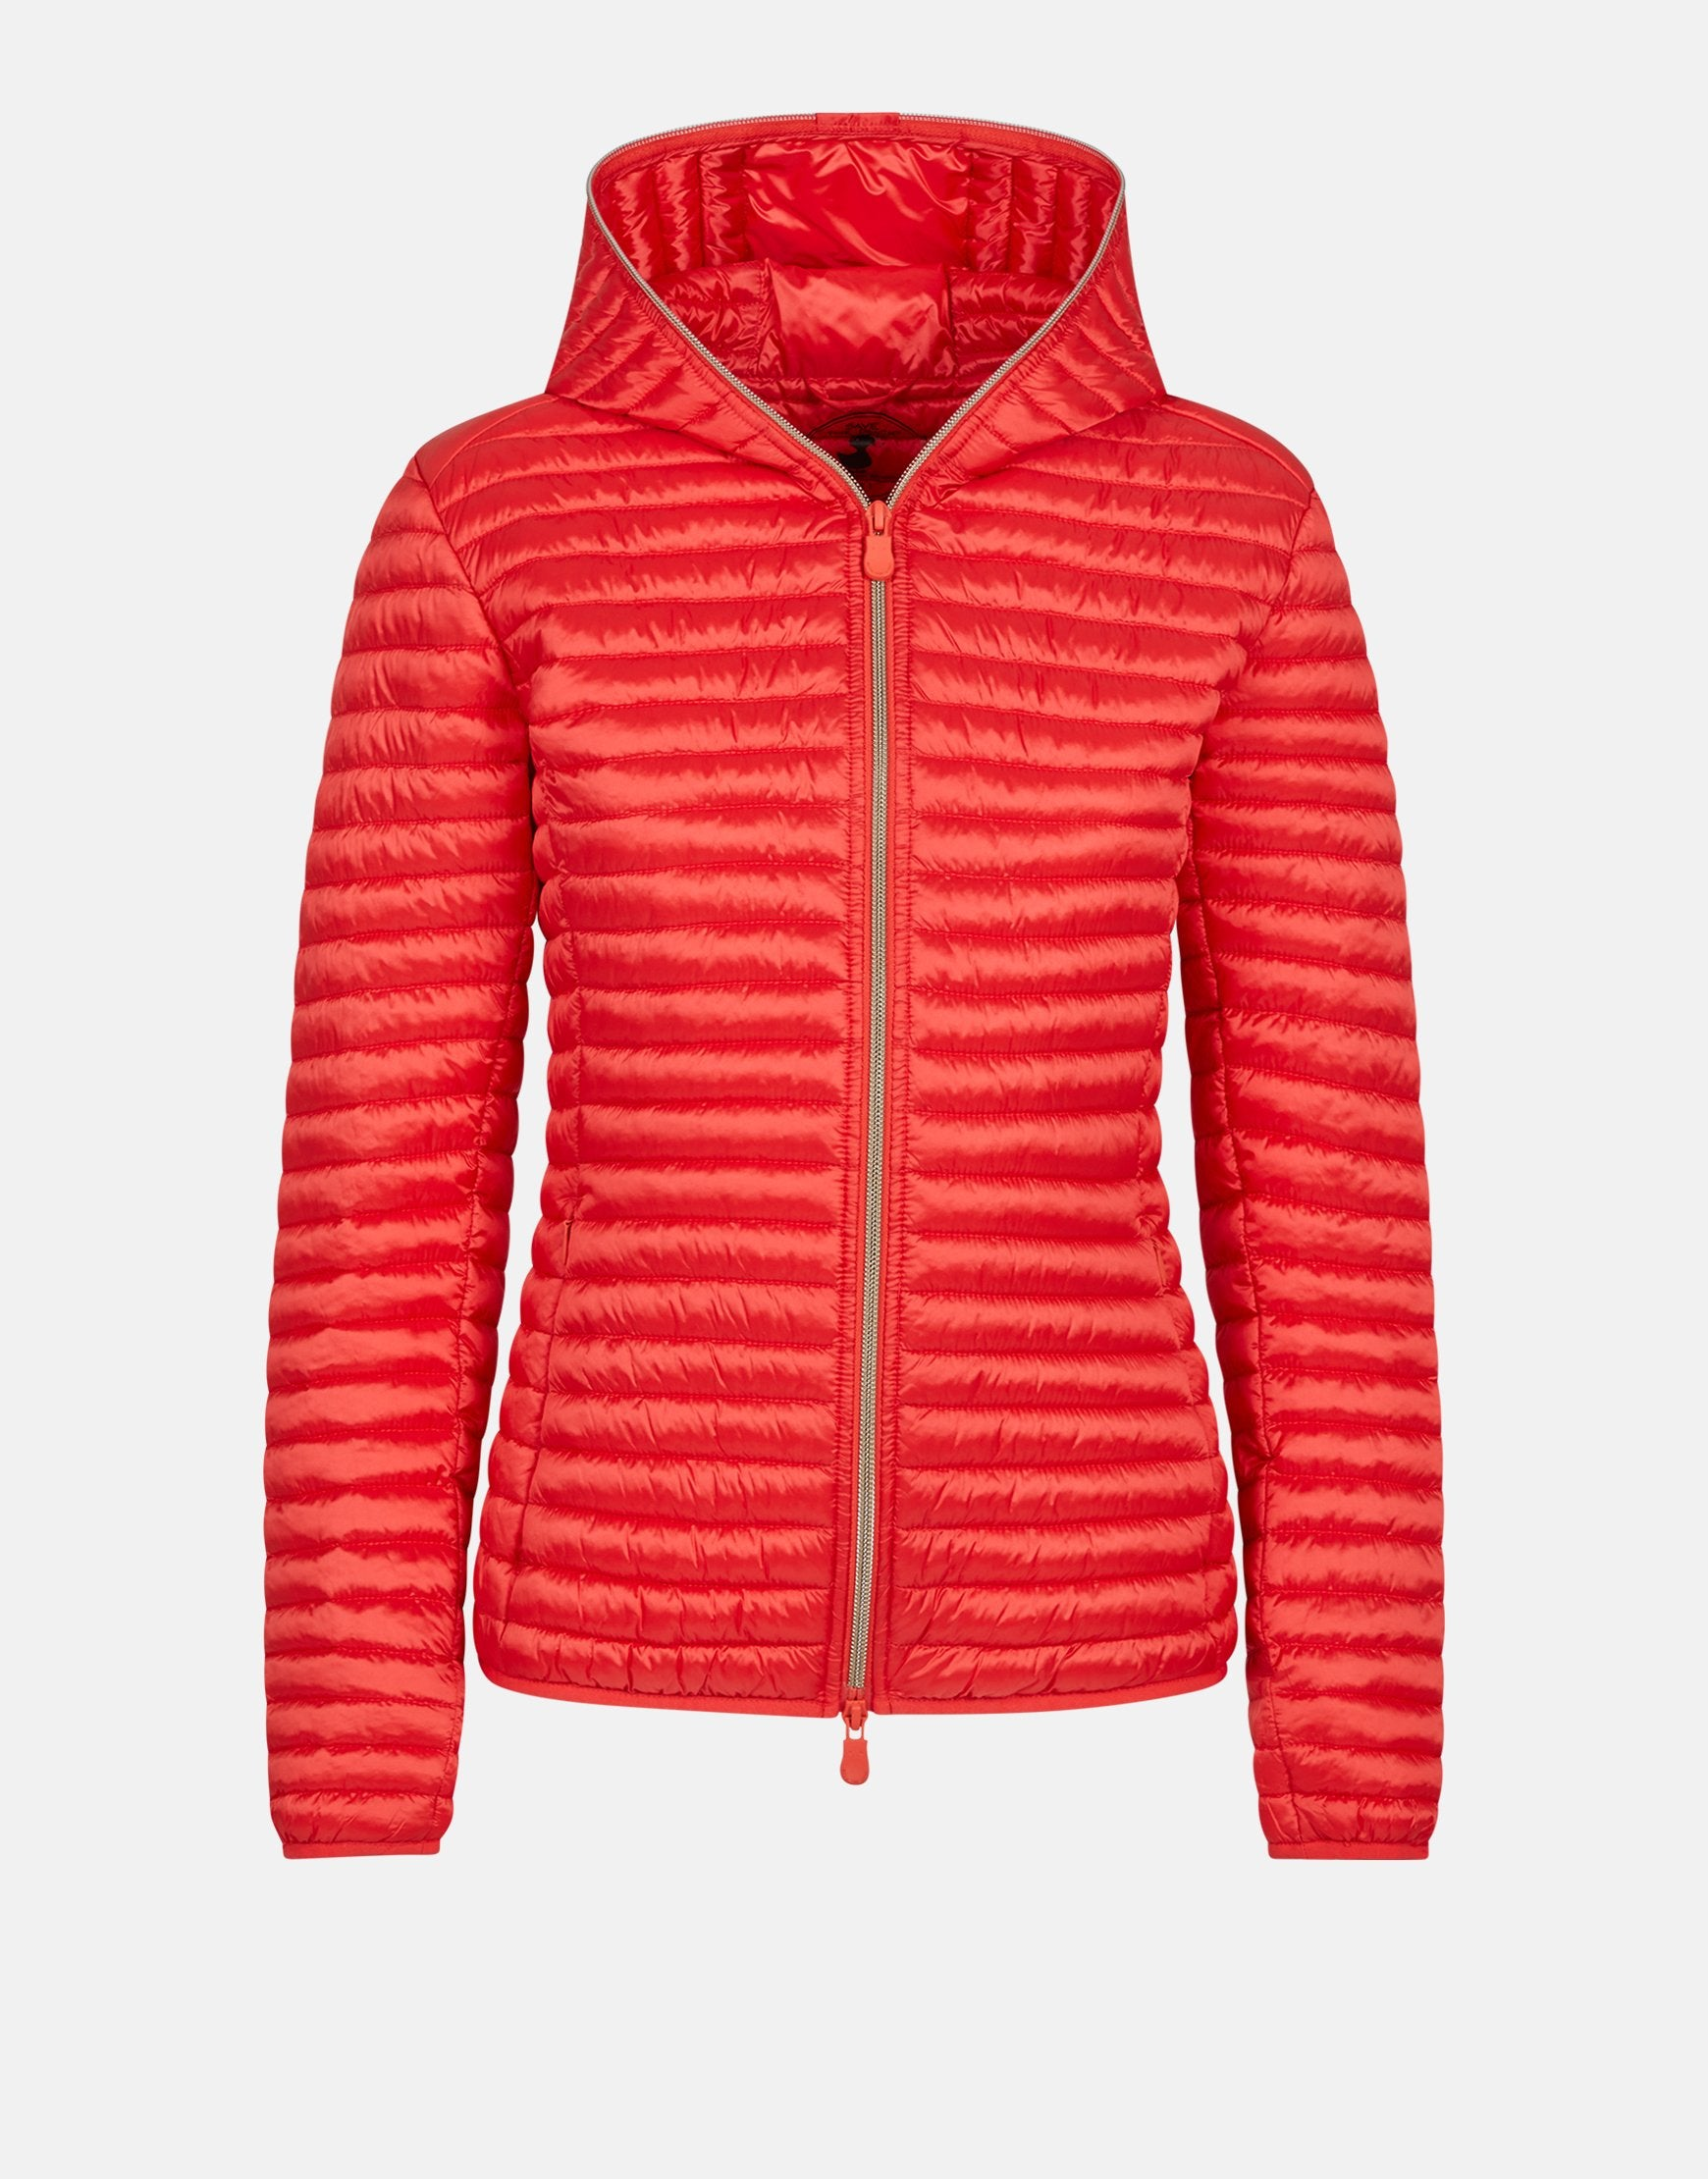 Save The Duck Womens IRIS Hooded Jacket